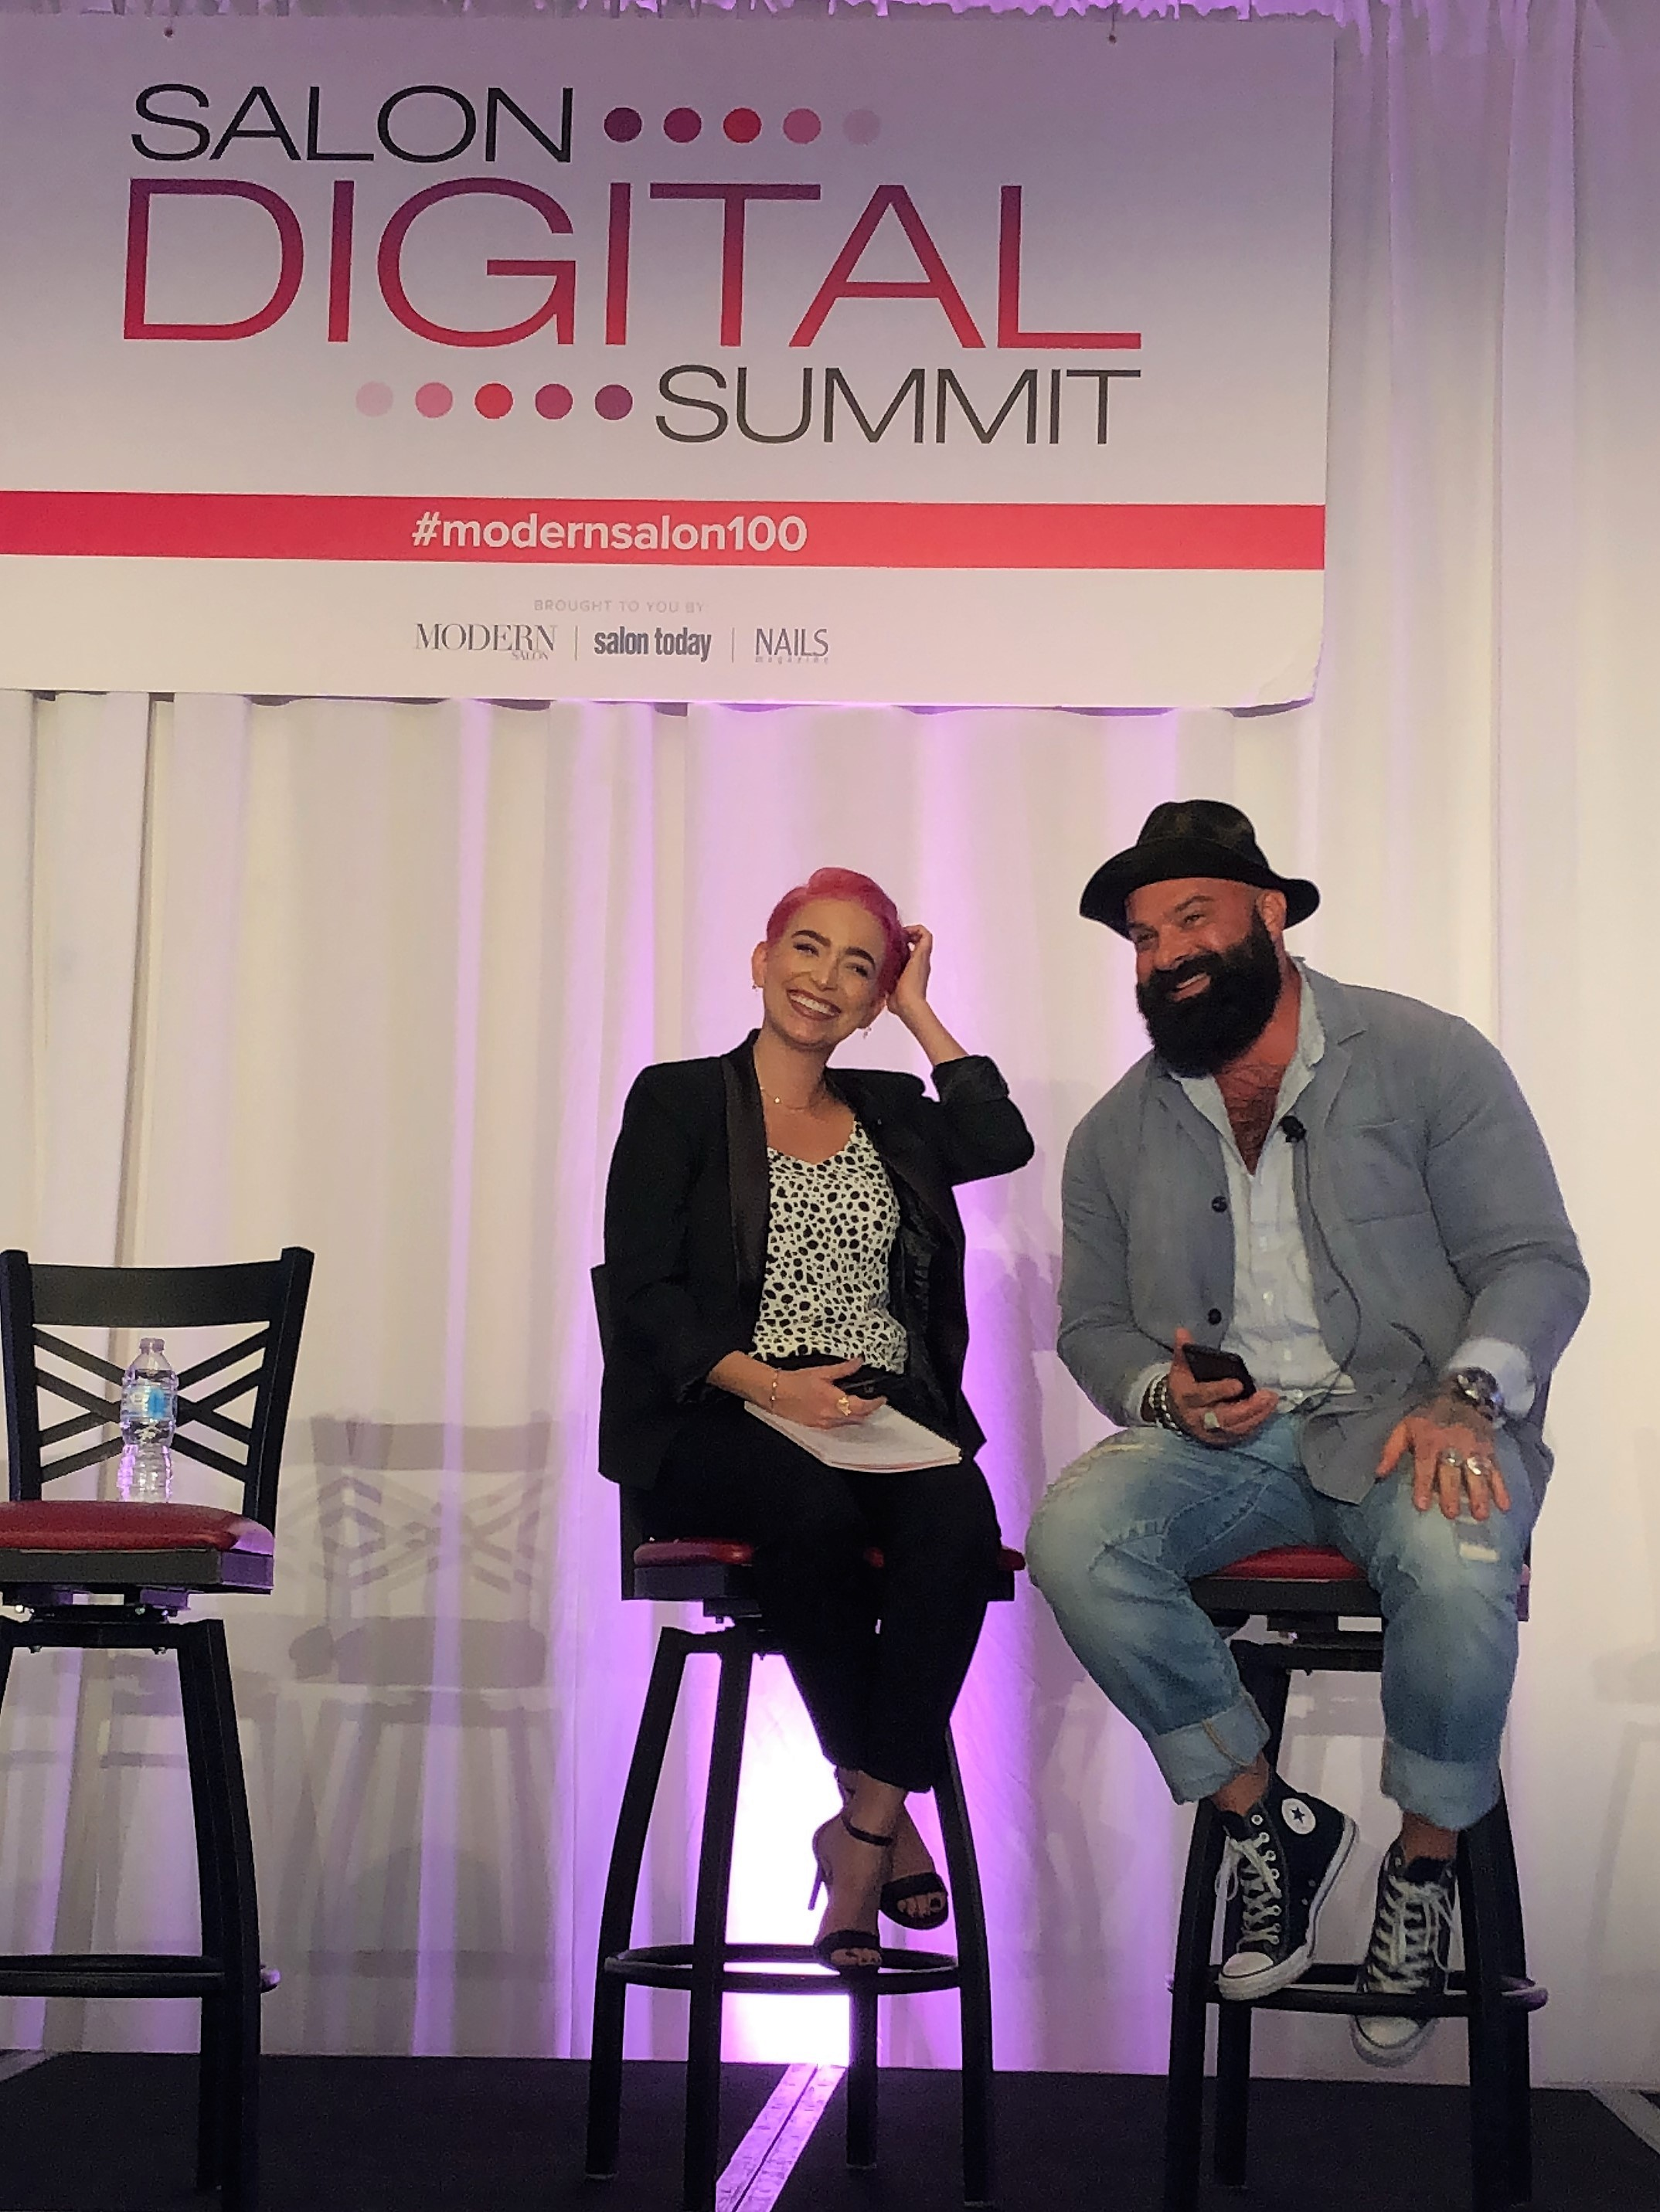 Salon Digital Summit: Setting Your Salon Social and Digital Objectives